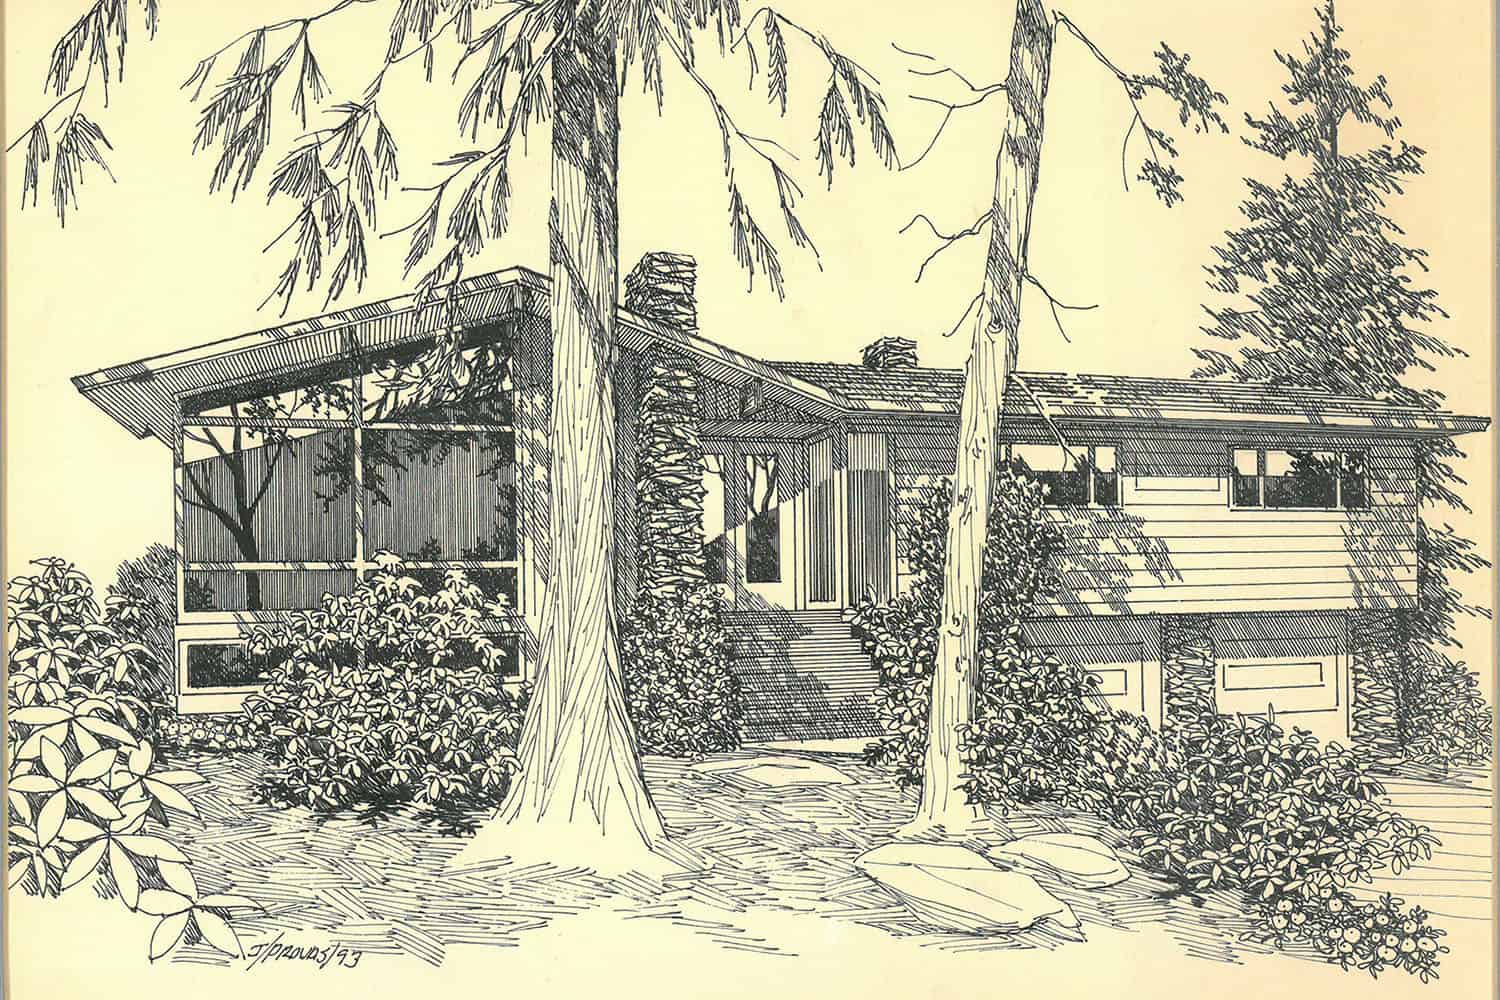 ranch-house-midcentury-exterior-sketch-before-remodel